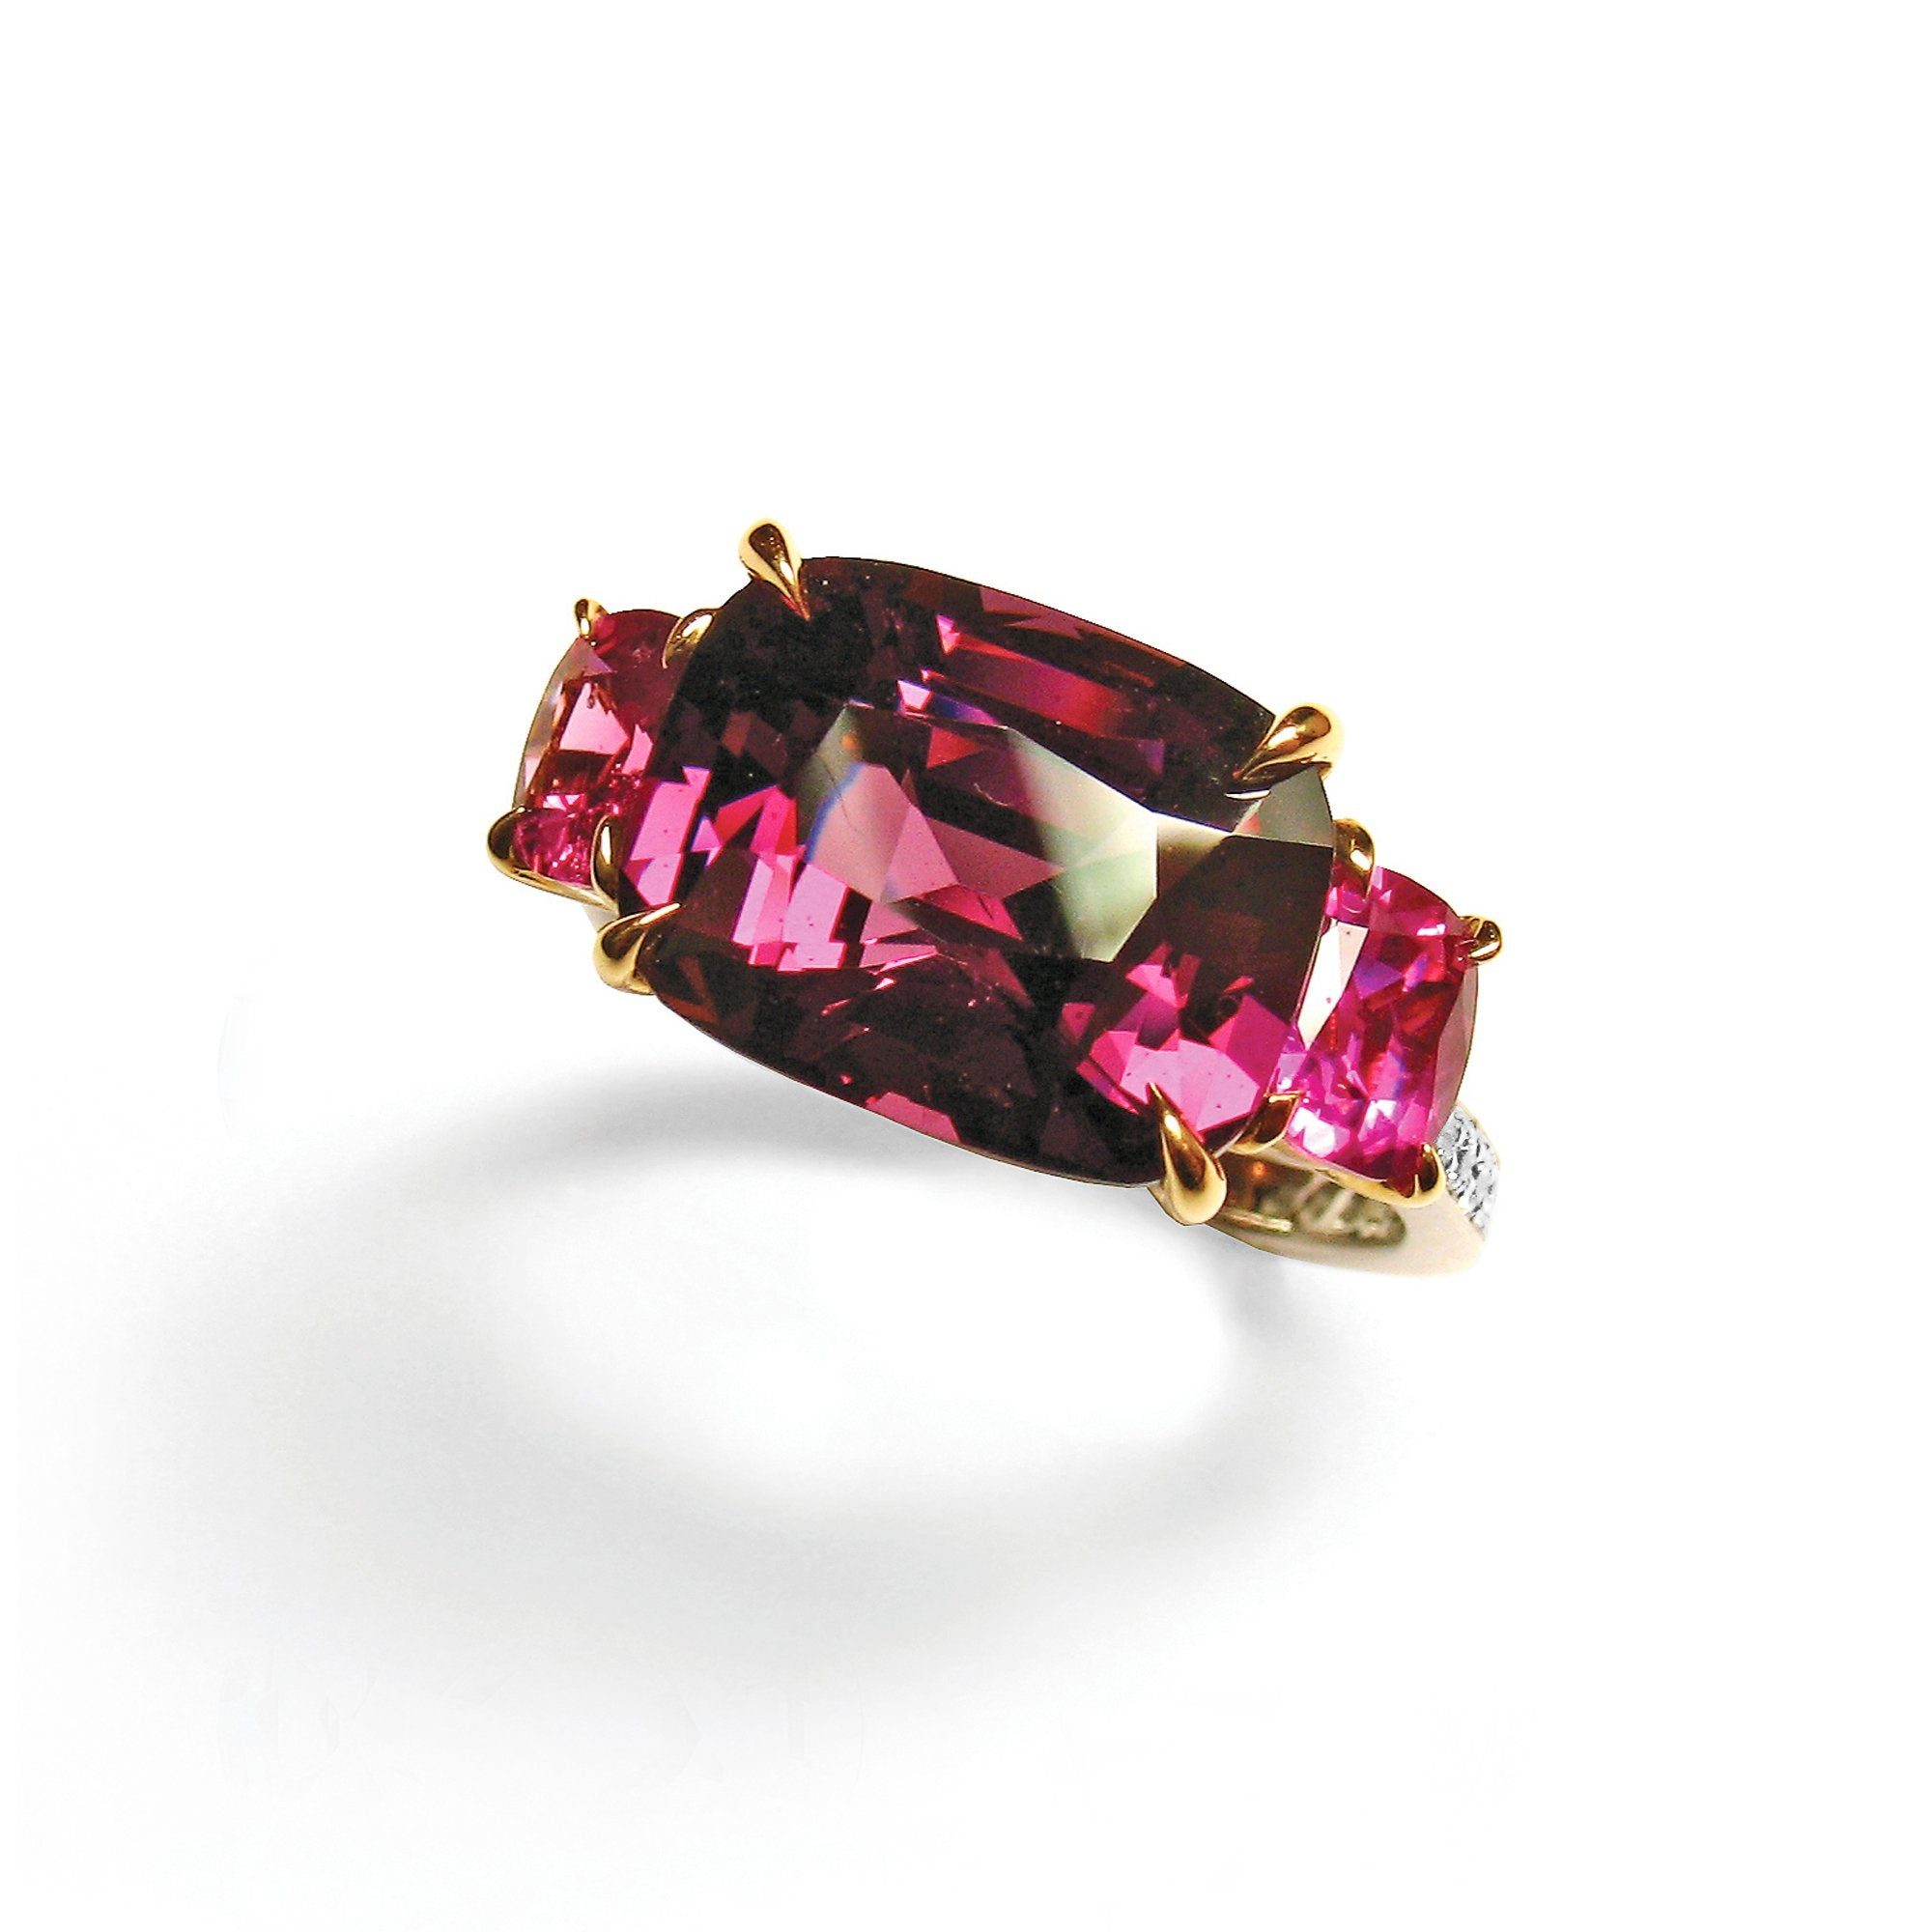 Garnet and Pink Sapphire Ring - Paolo Costagli